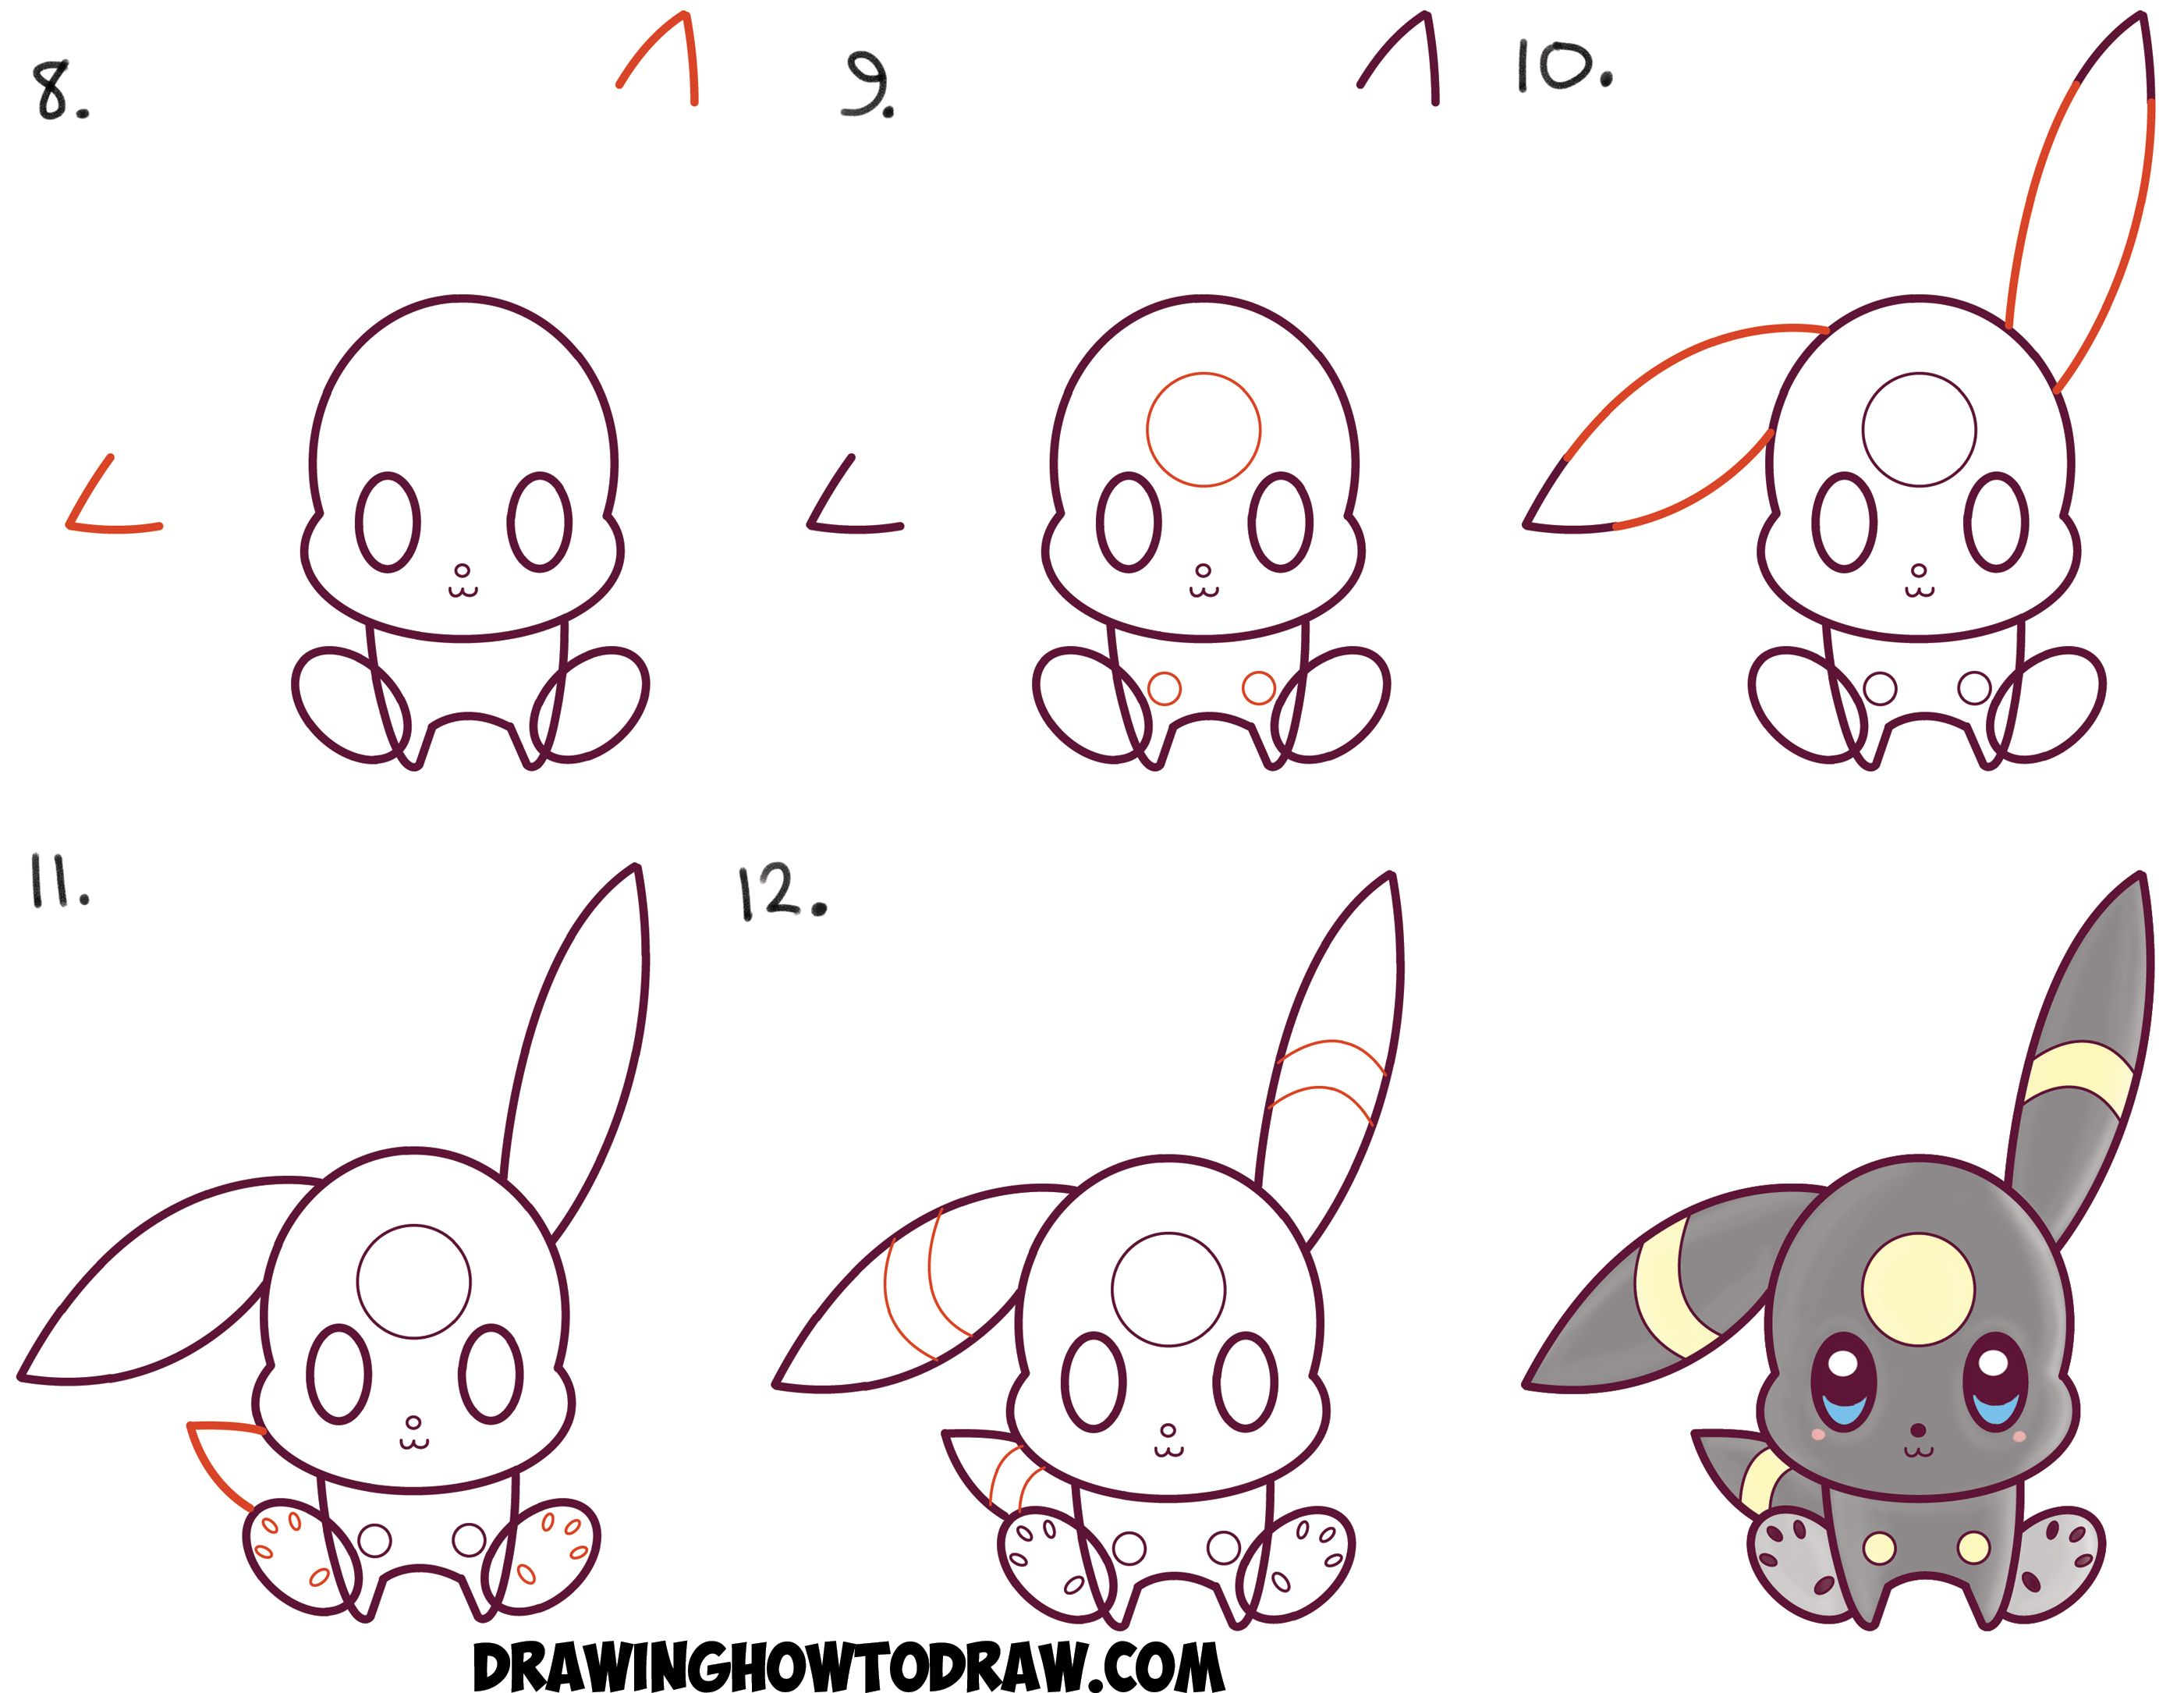 Learn How to Draw Cute Kawaii Chibi Umbreon from Pokemon